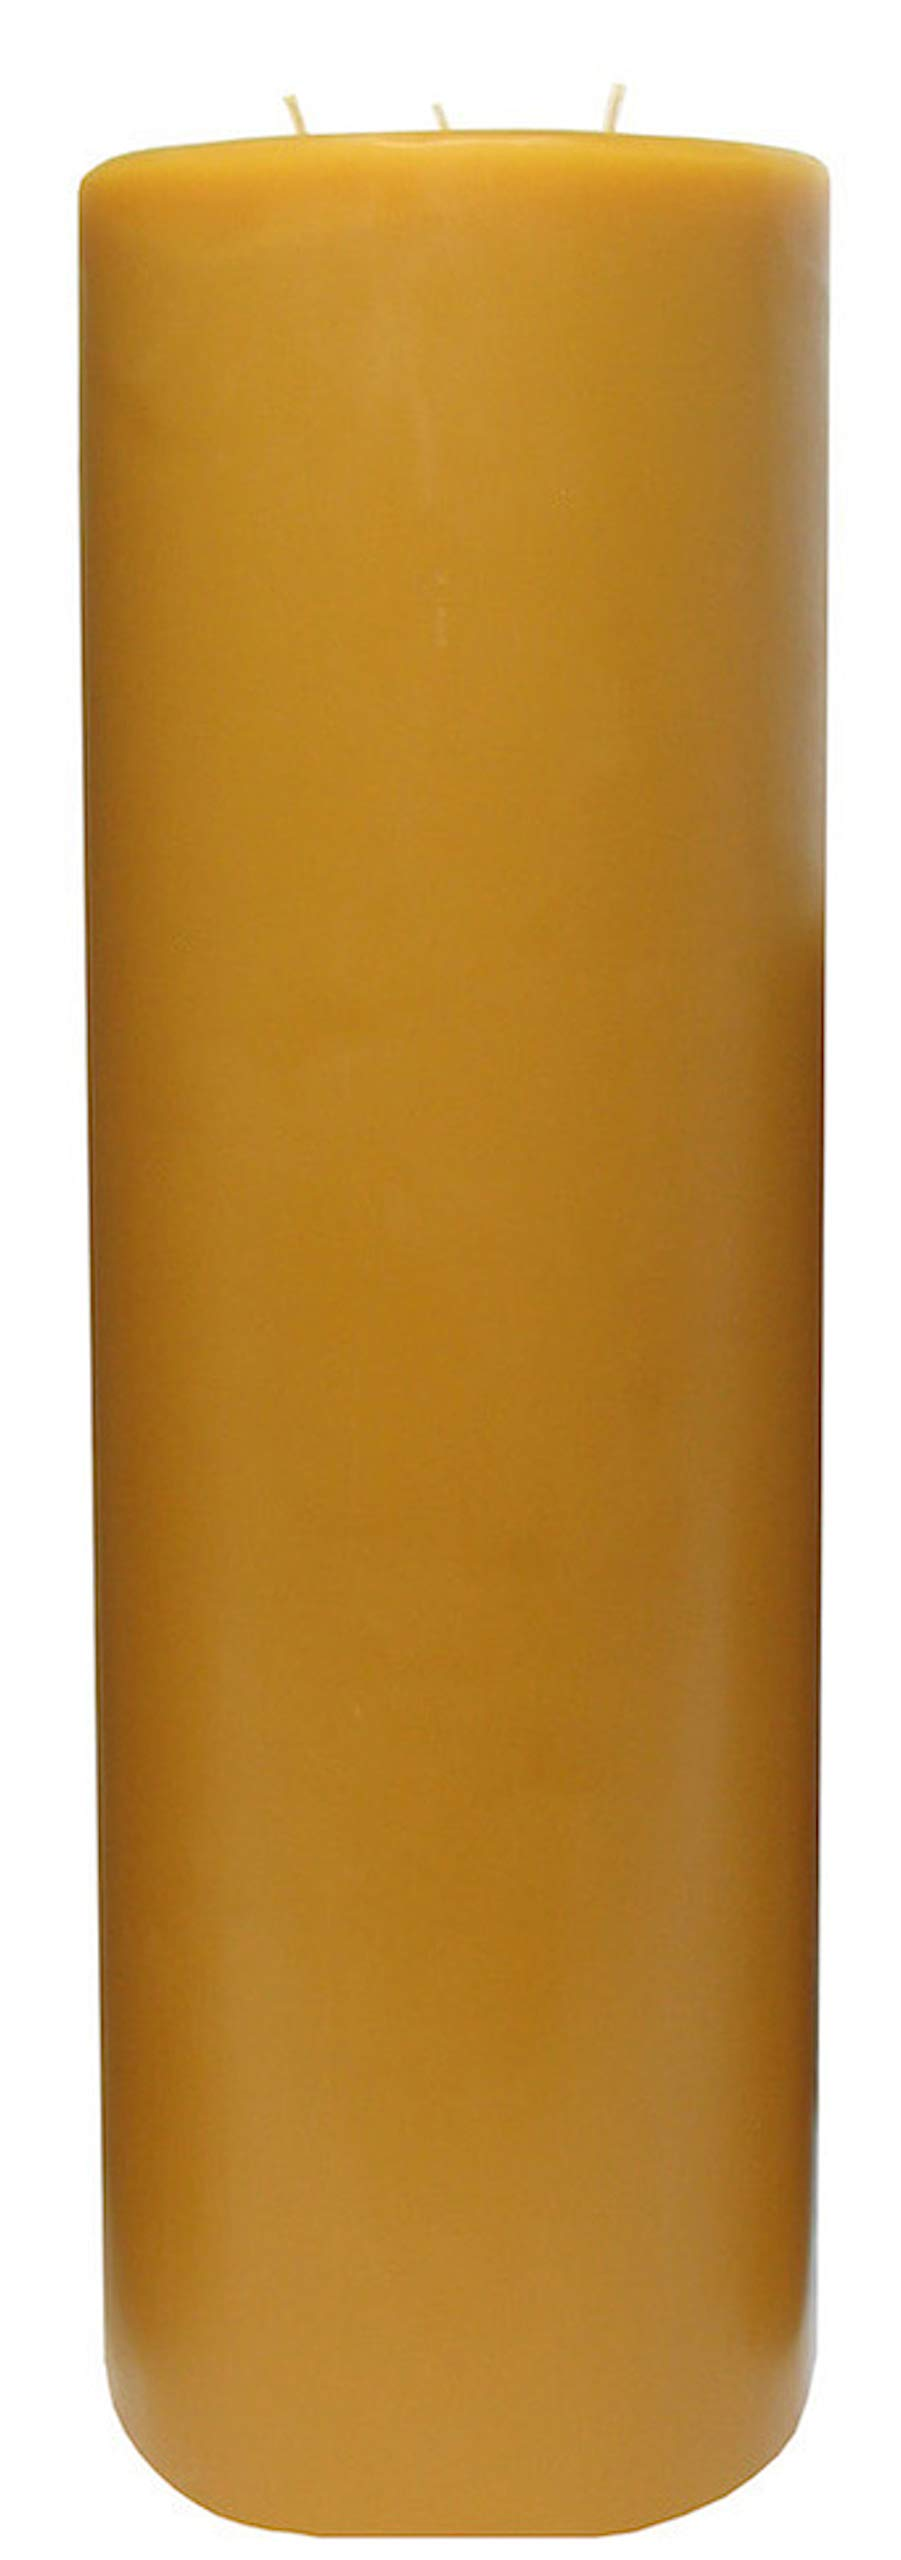 100% Pure USA Beeswax 18'' Tall, 3 Wick Pillar Candle